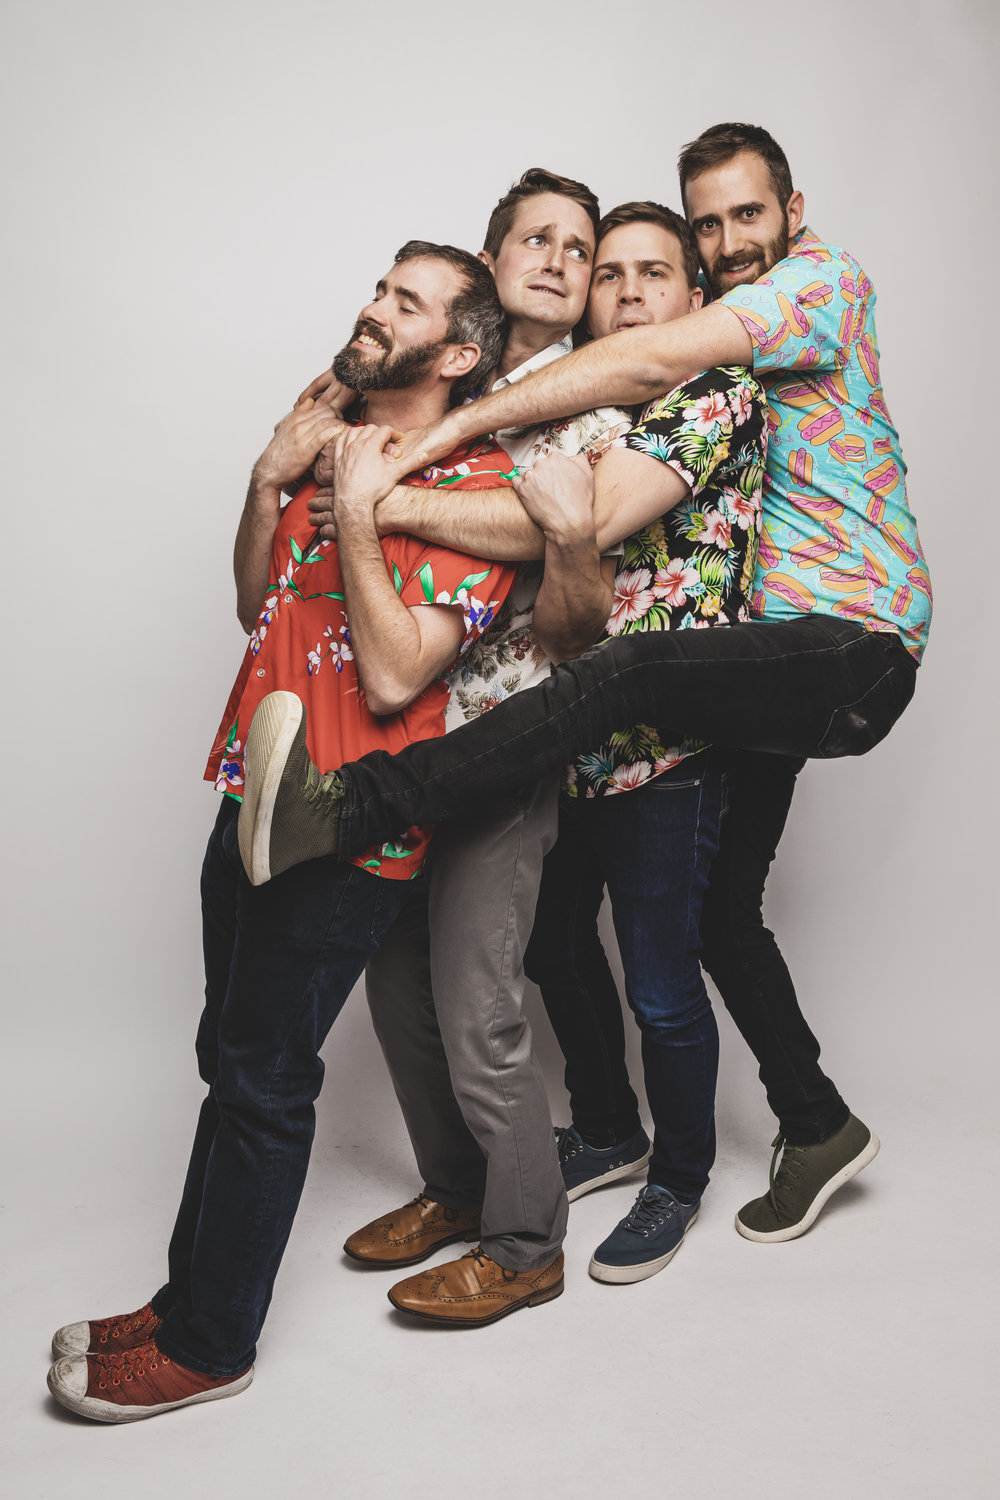 The Squirts - Promo Image